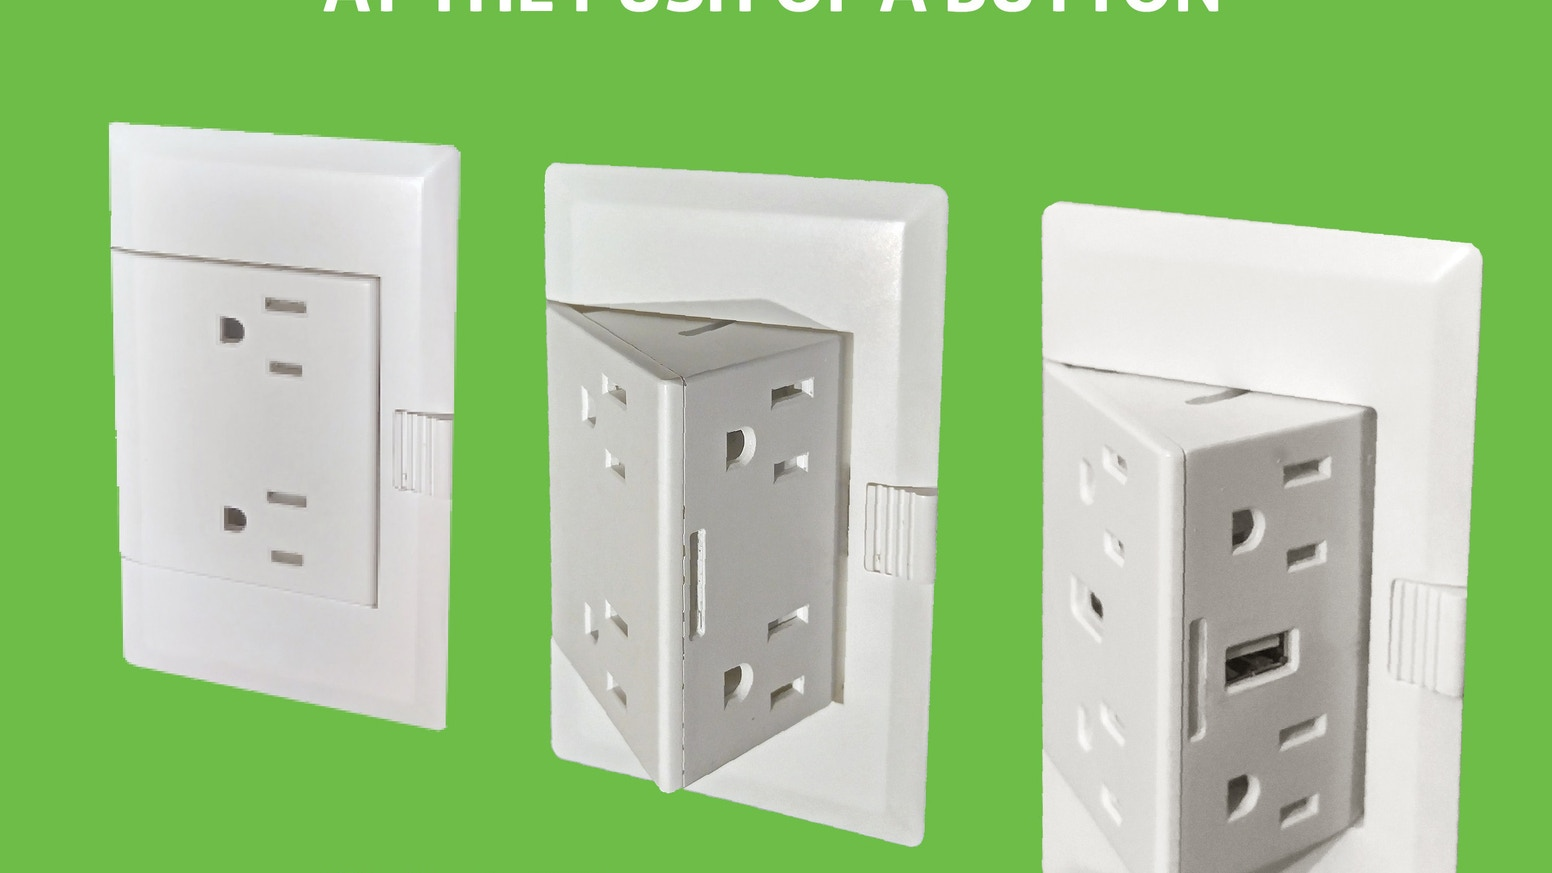 theOUTlet doubles the amount of outlets where you need them, when you need them, with the simple push of a button!